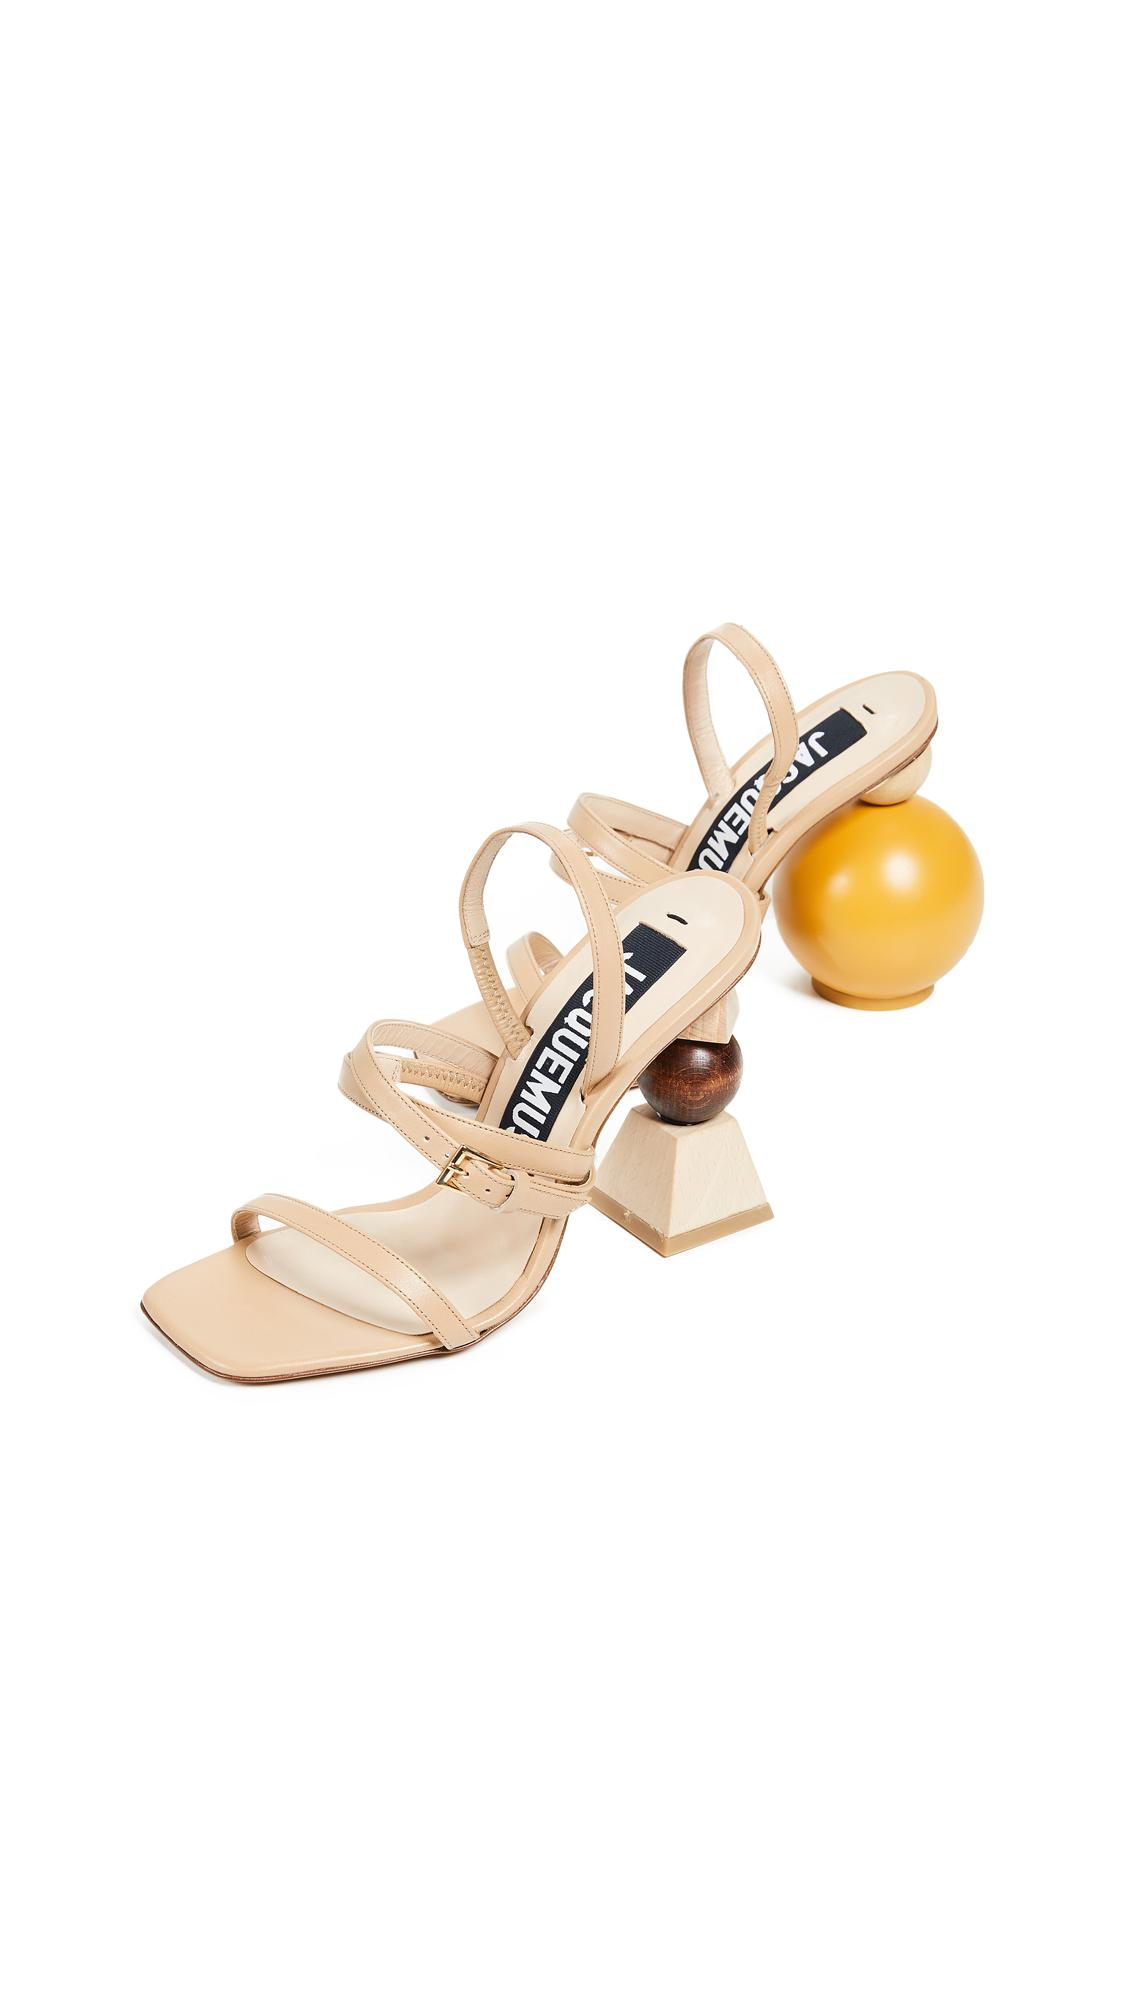 08cfc49ee57 Lyst - Jacquemus Les Bahia Sandals in Natural